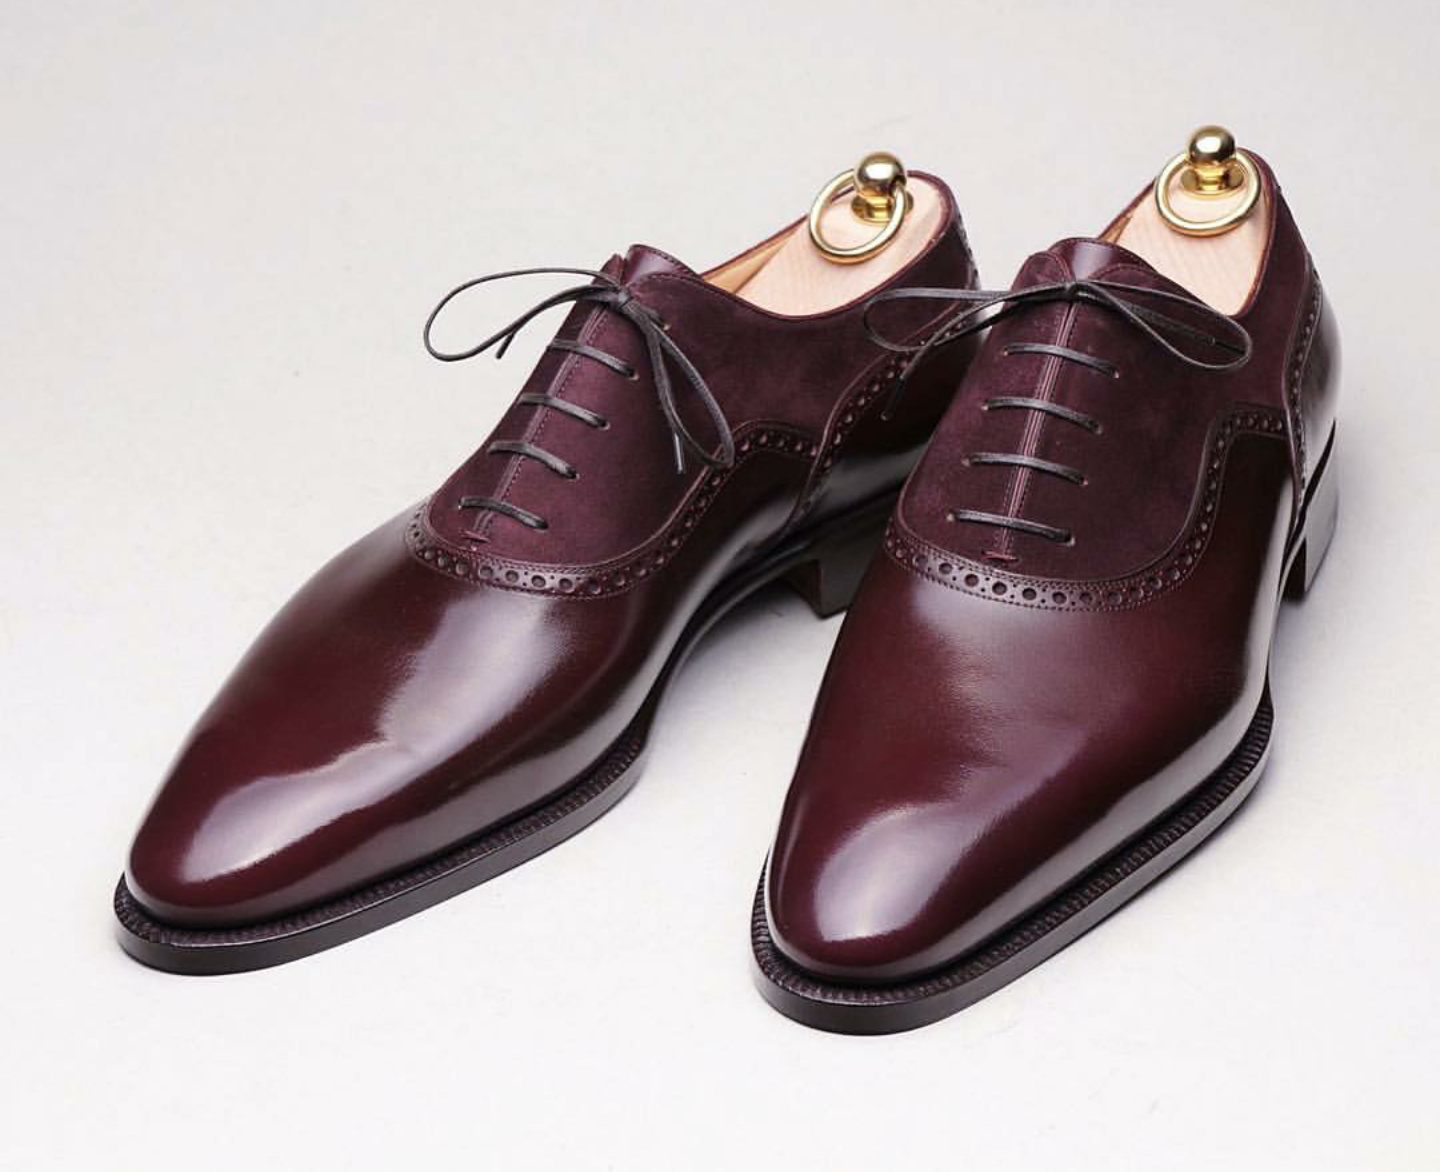 9ba2a59b95 Stefano Bemer calf leather and suede oxford in burgundy.